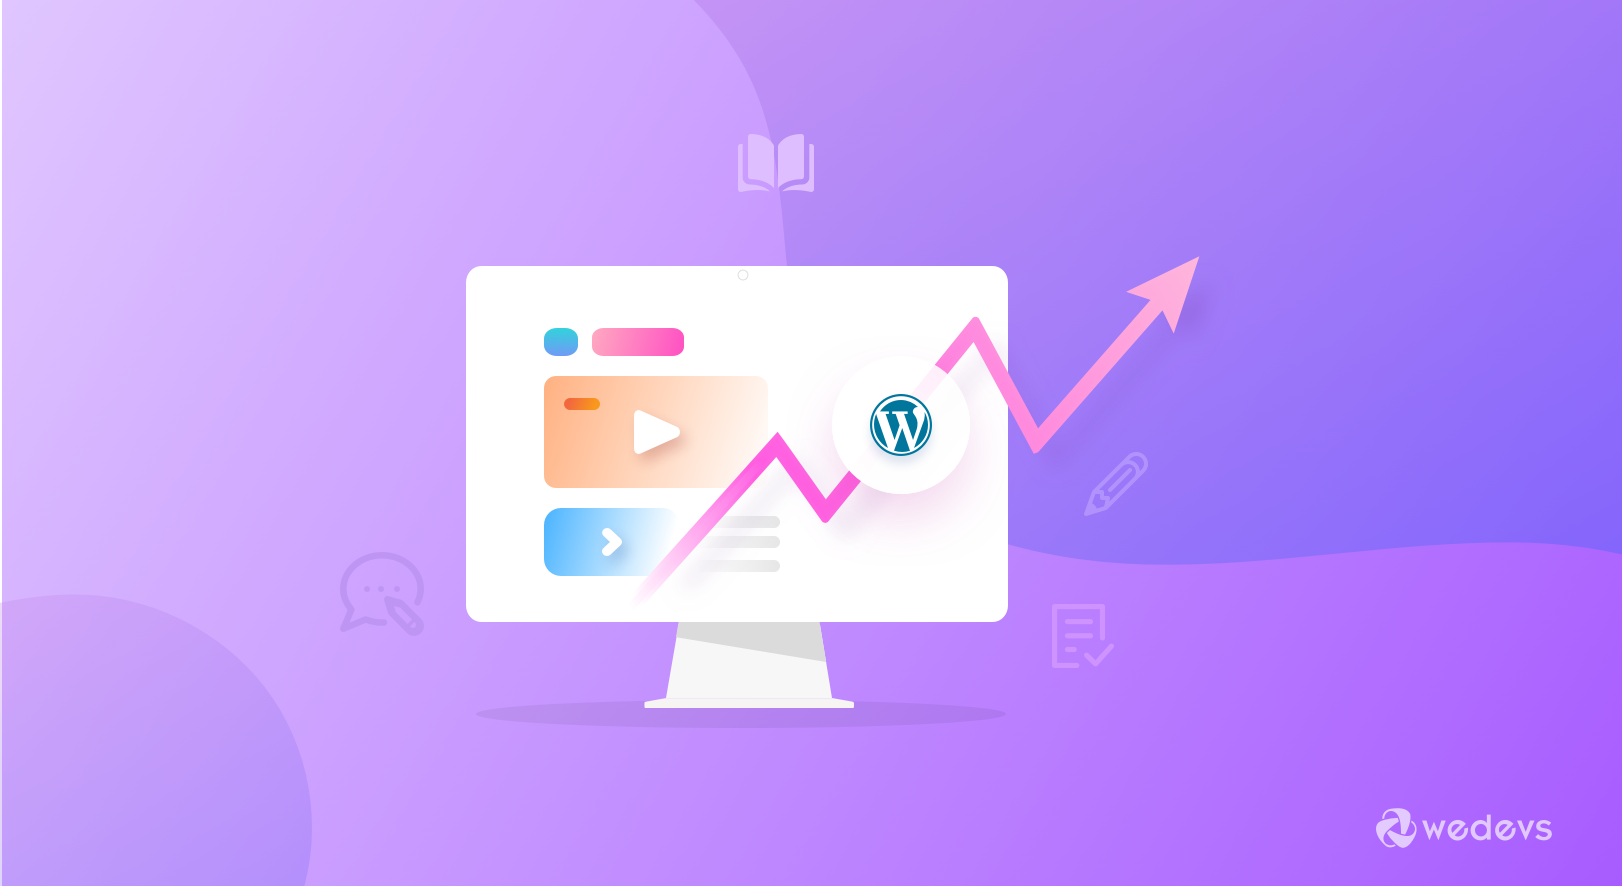 7 Ways to Increase WordPress Blog Traffic by Updating Your Content